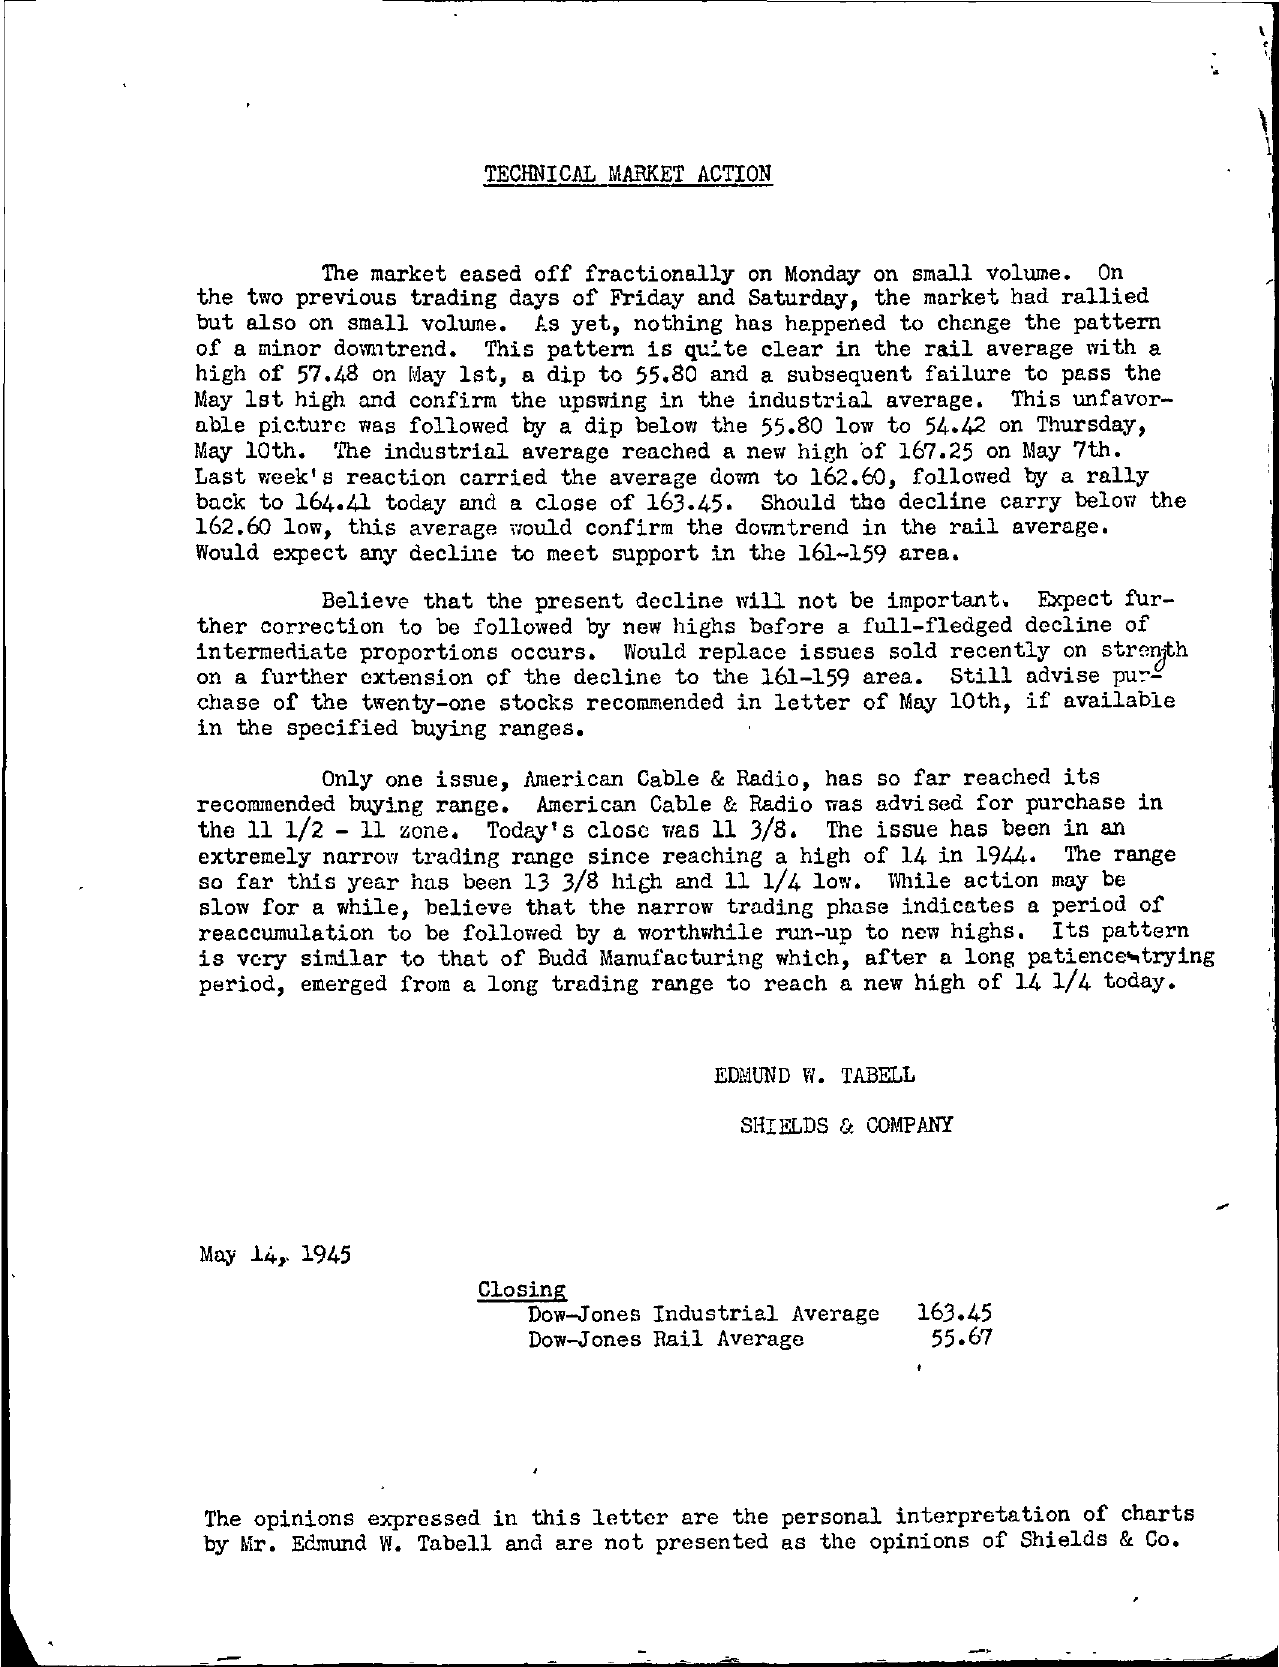 Tabell's Market Letter - May 14, 1945